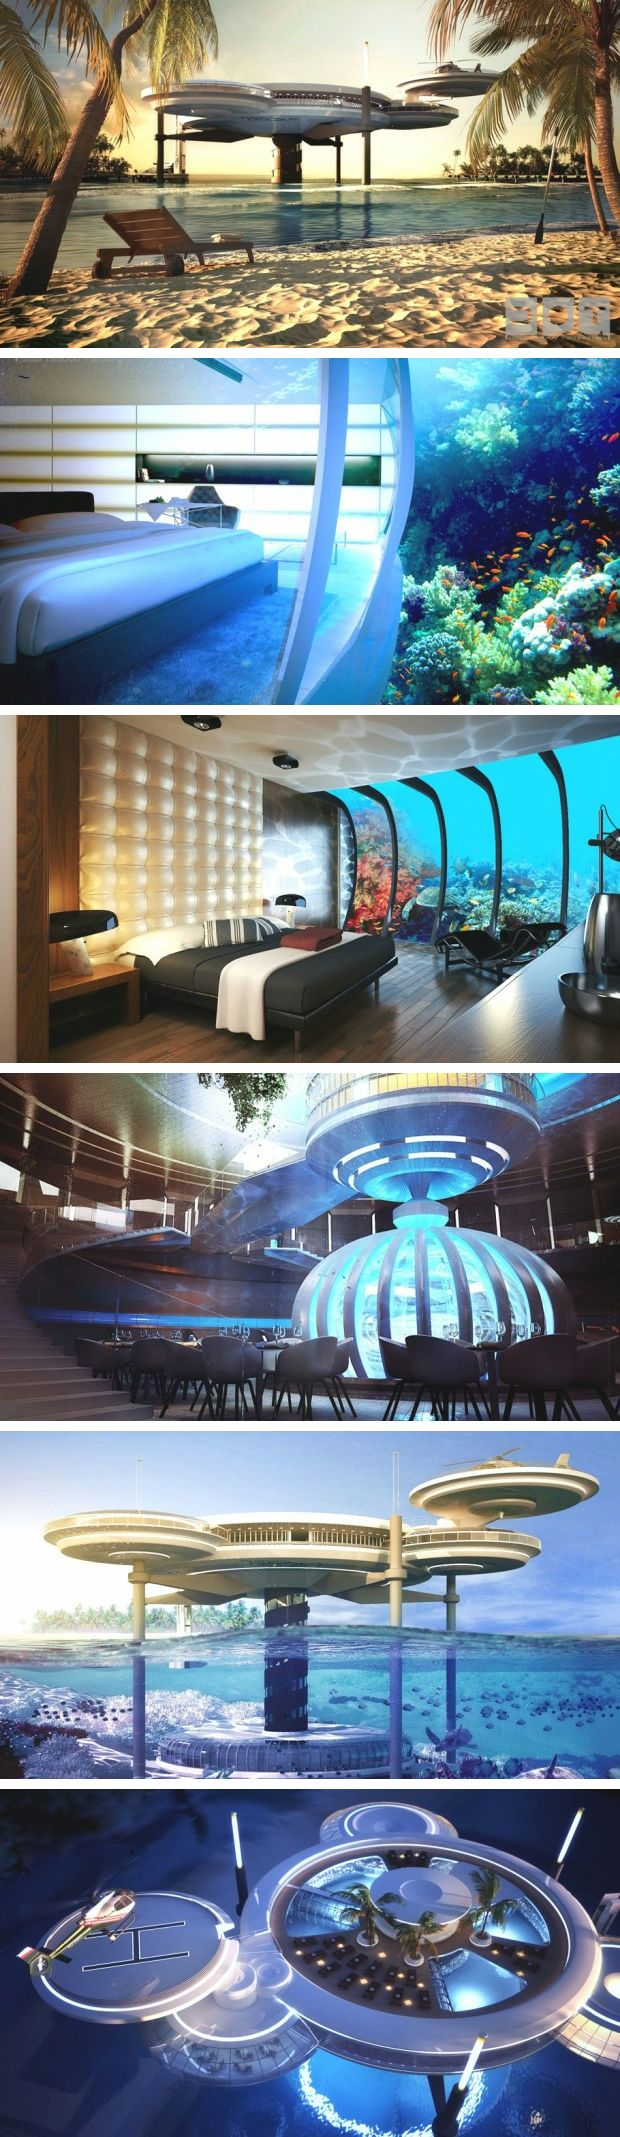 I have no words for this... (Water Discus Underwater Hotel Concept, Dubai | Deep Ocean Technology.)